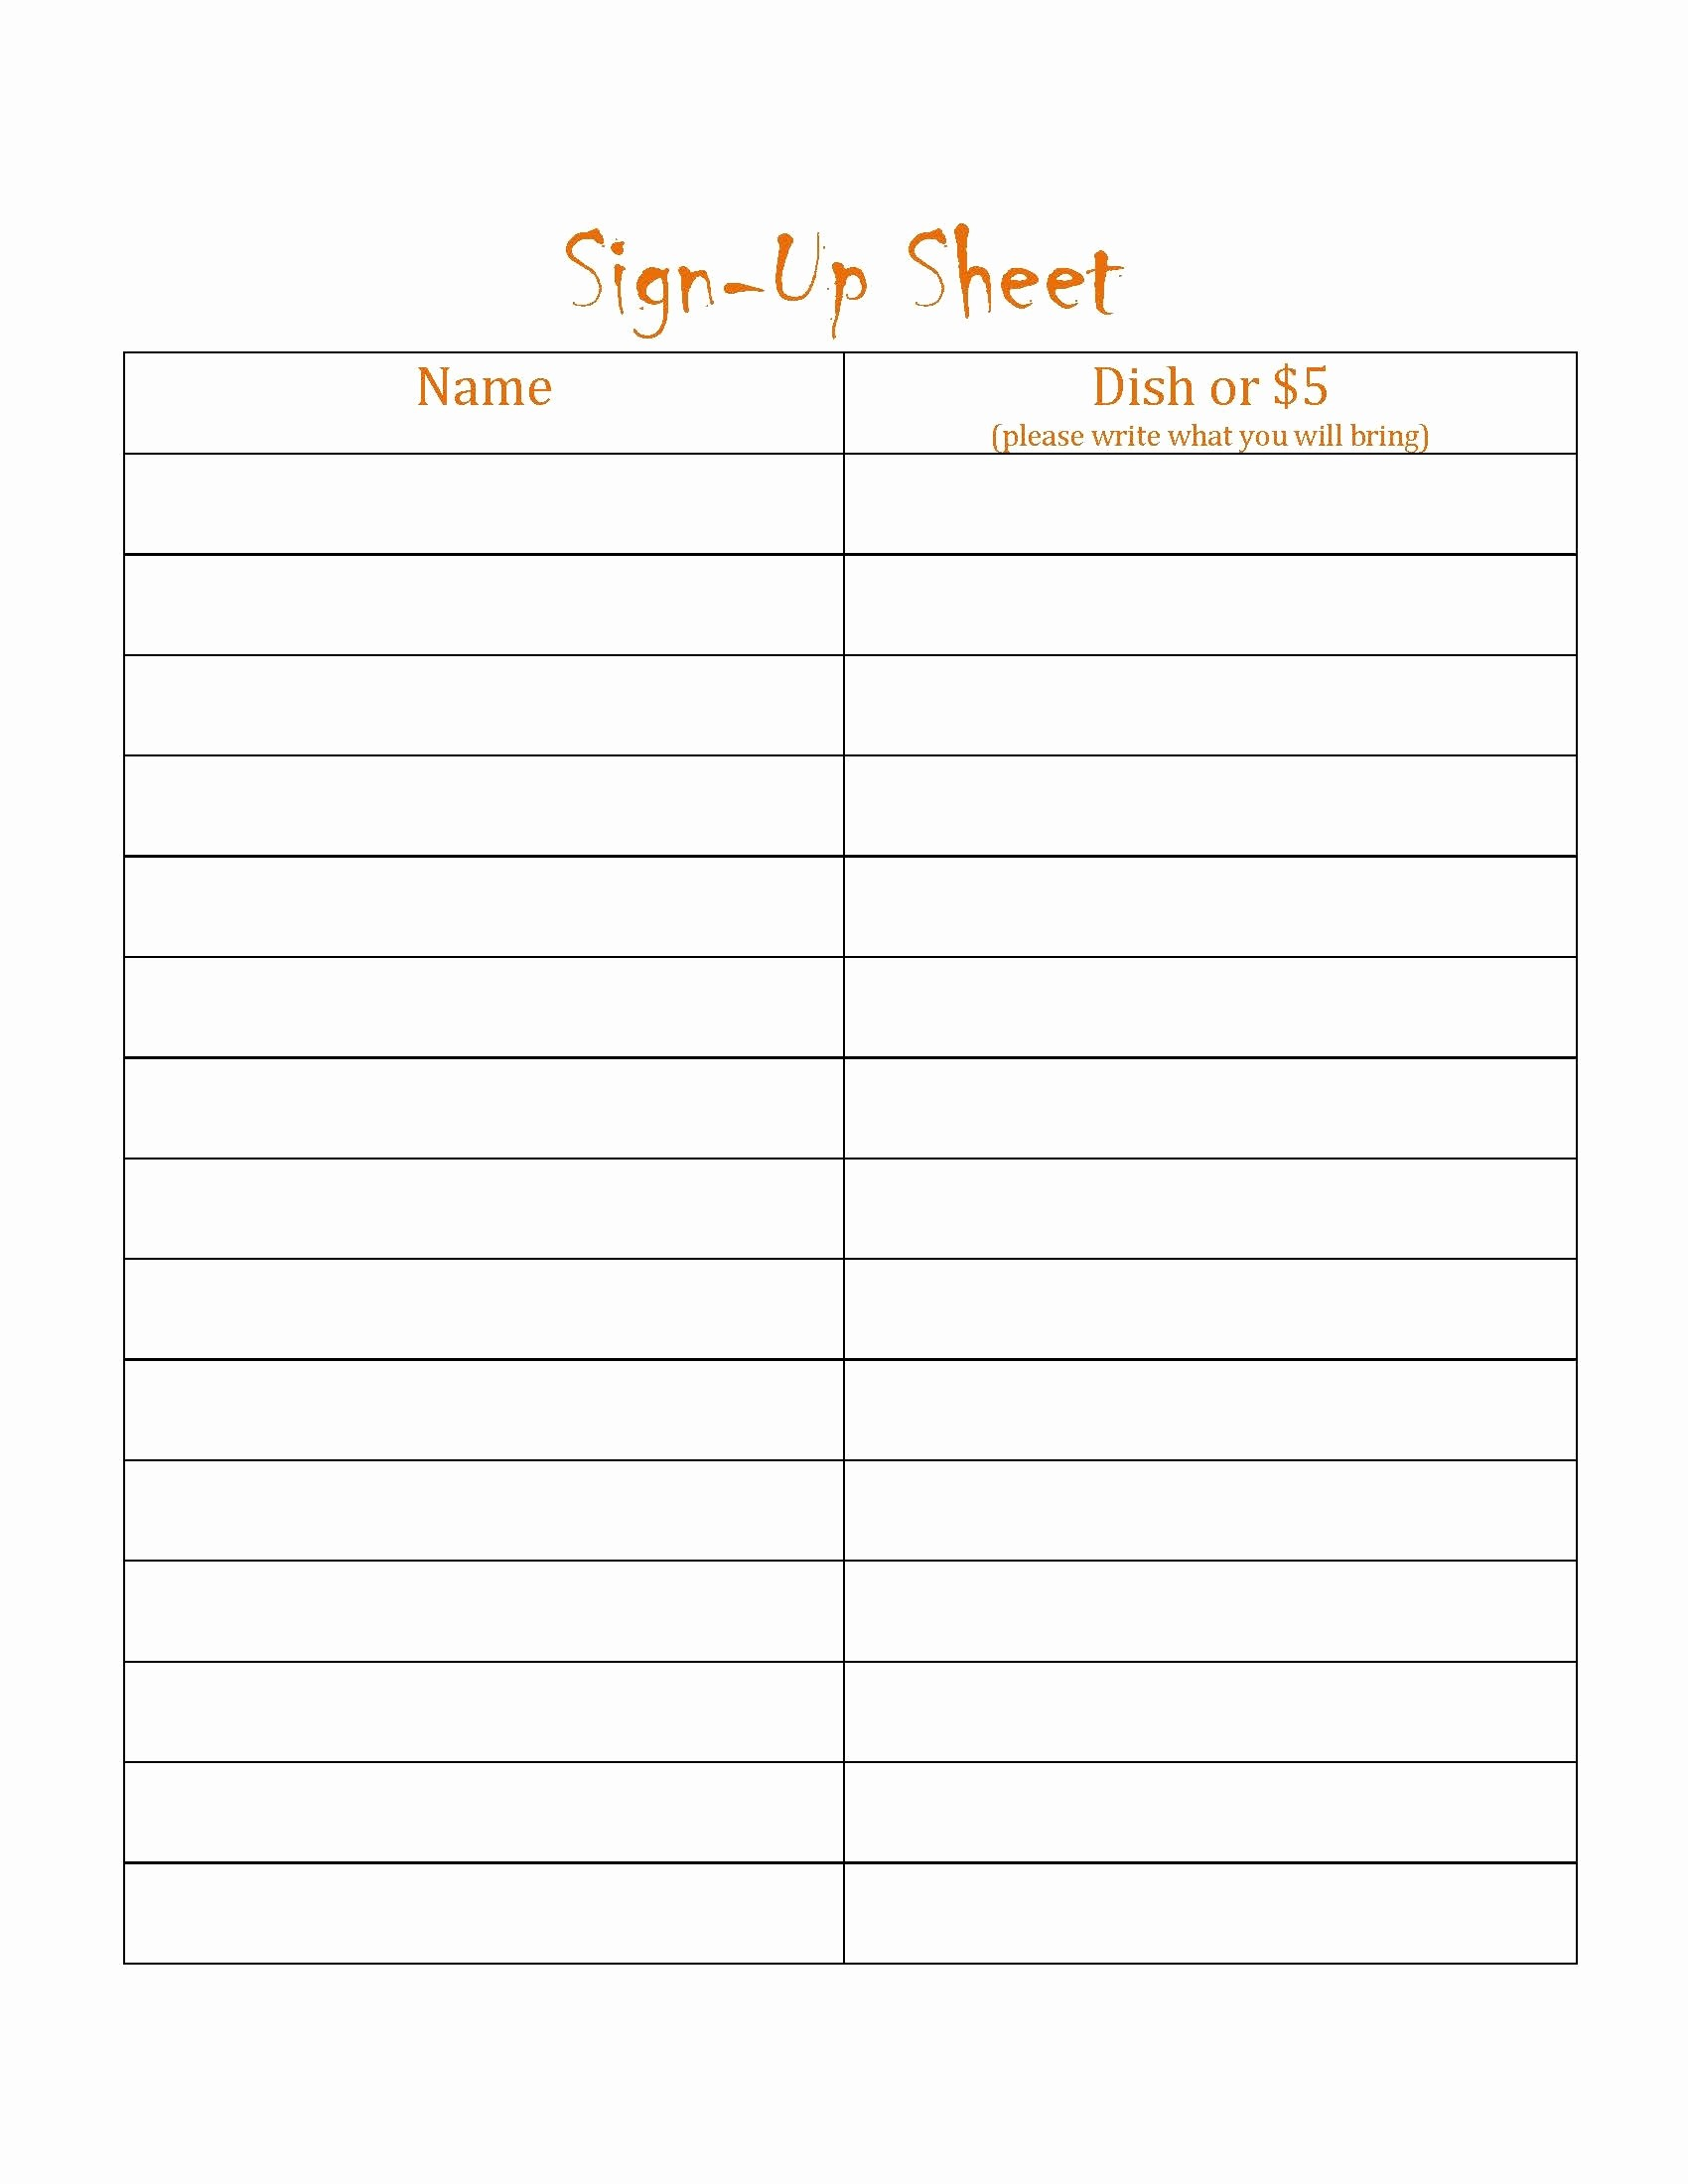 Blank Sign Up Sheet Template Fresh Blanks Potluck Signs Up Sheets Free